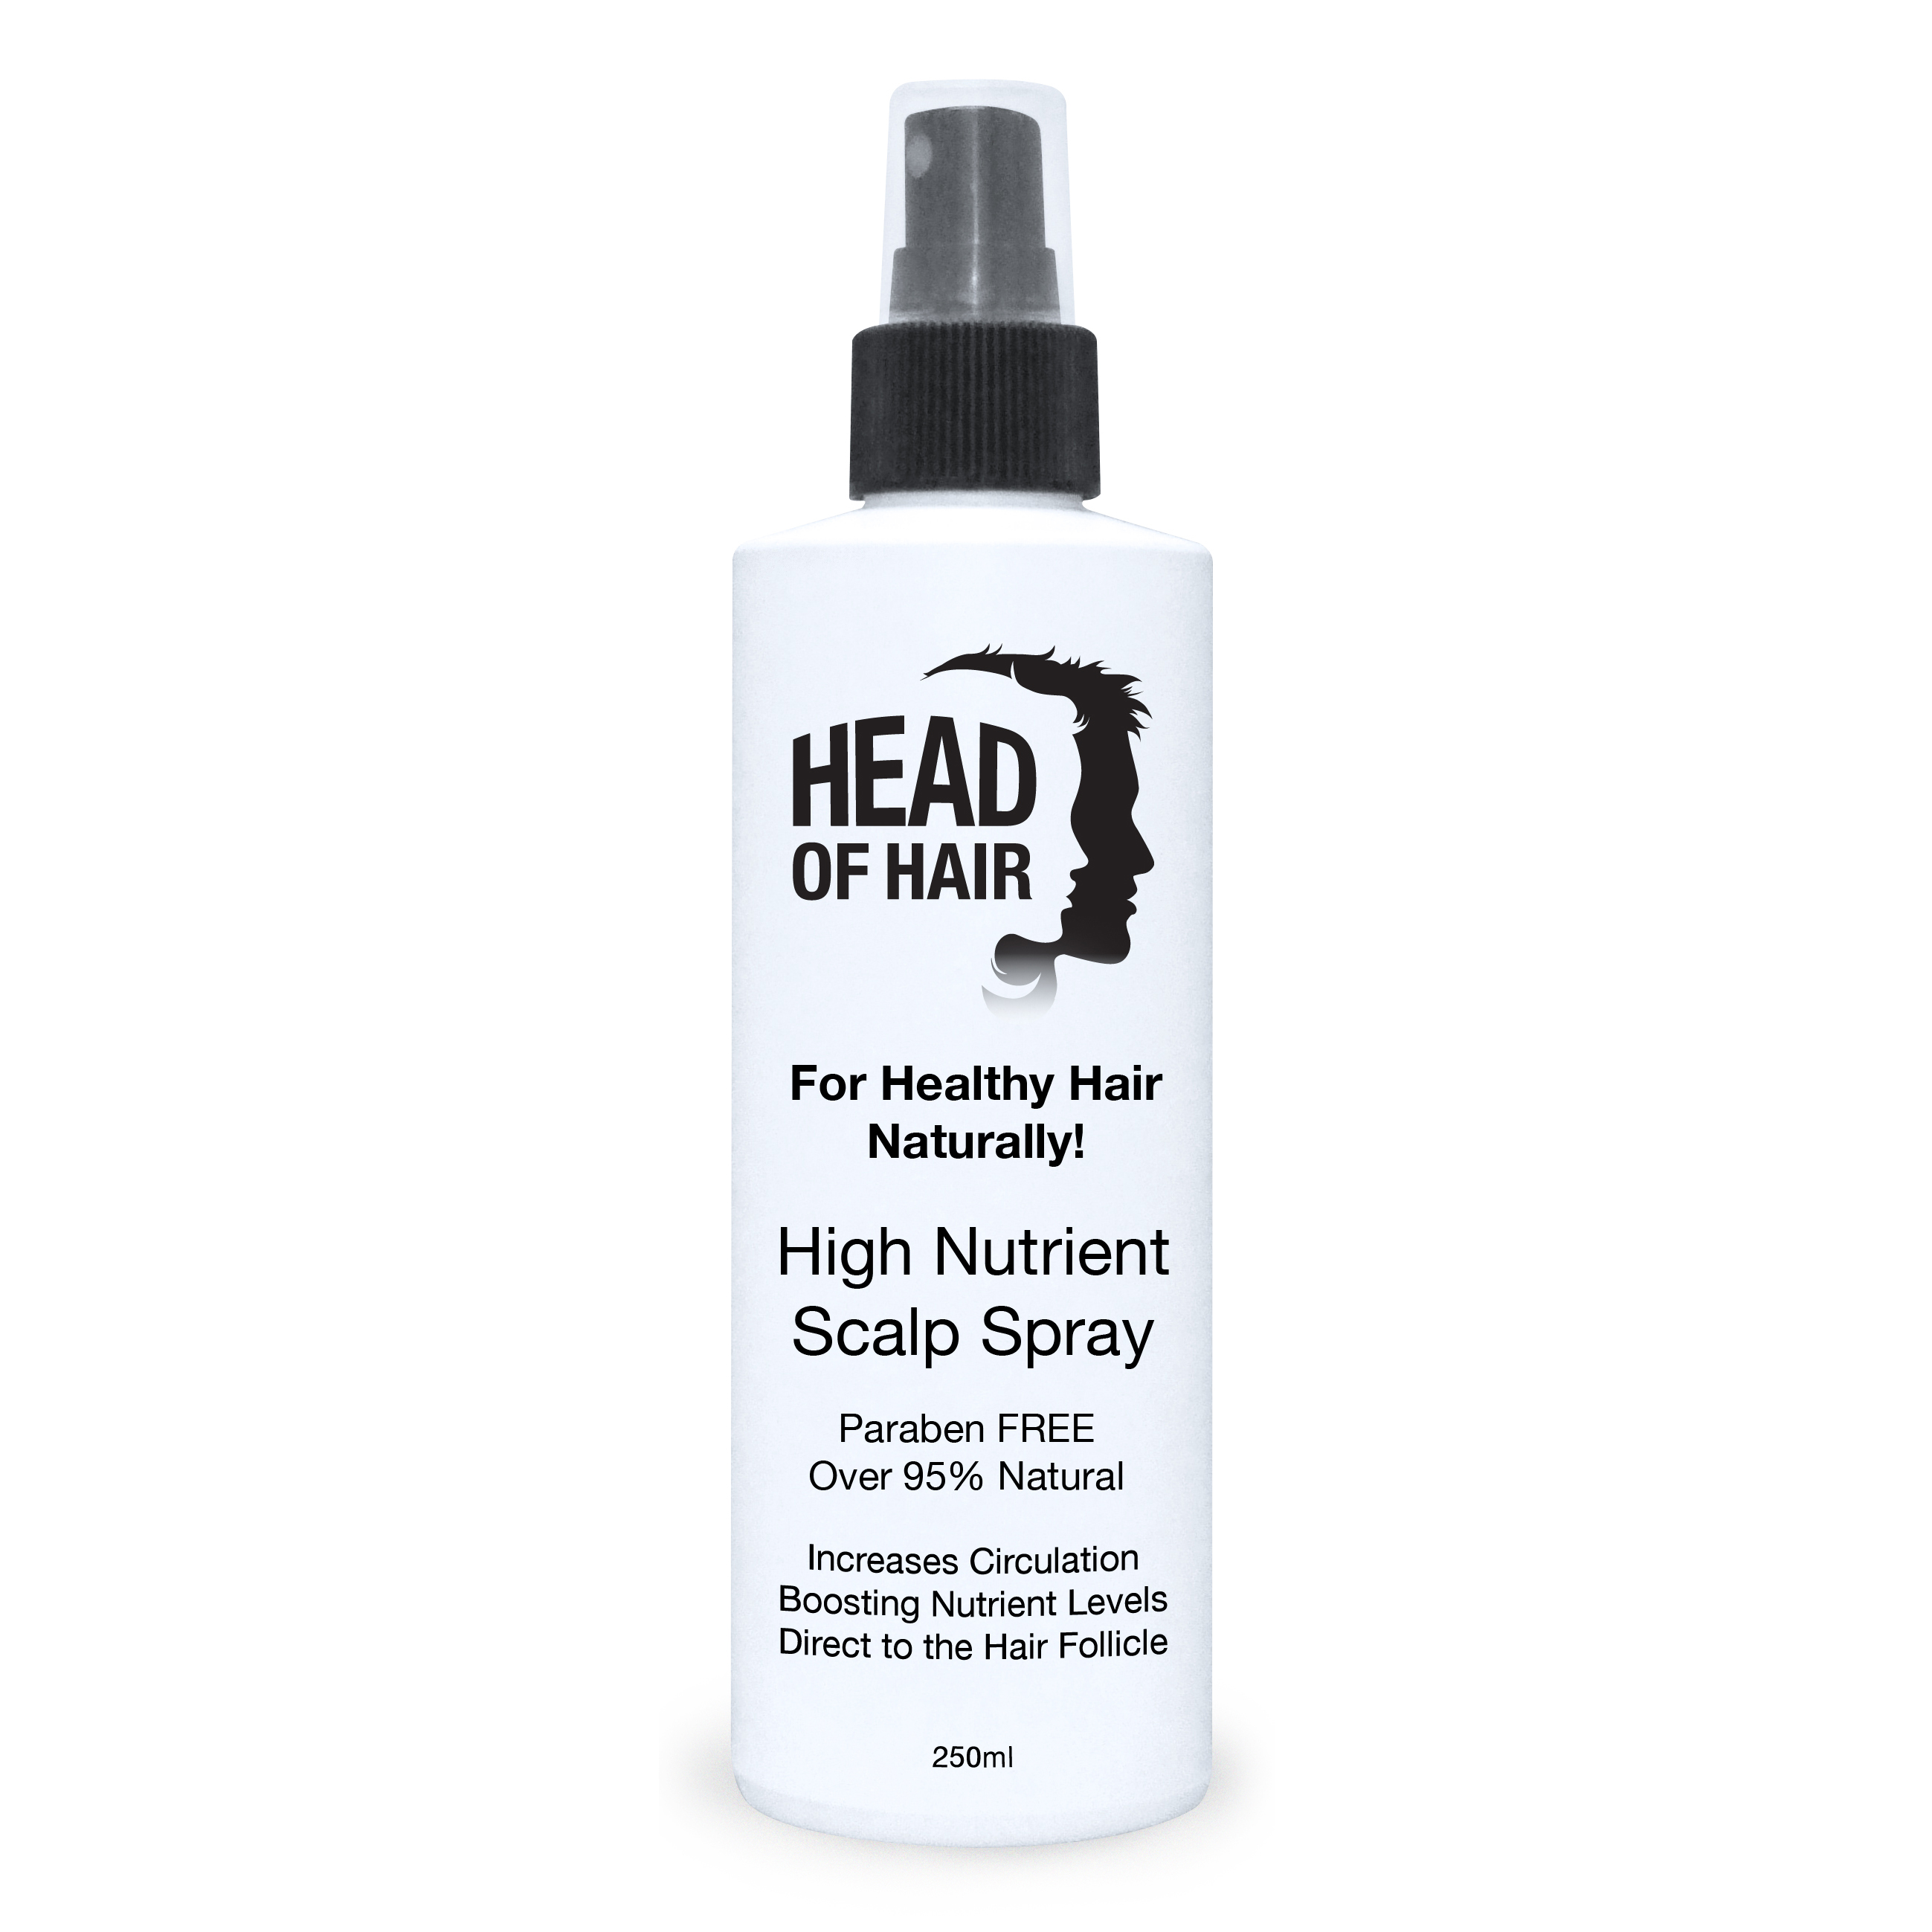 High Nutrient Scalp Spray